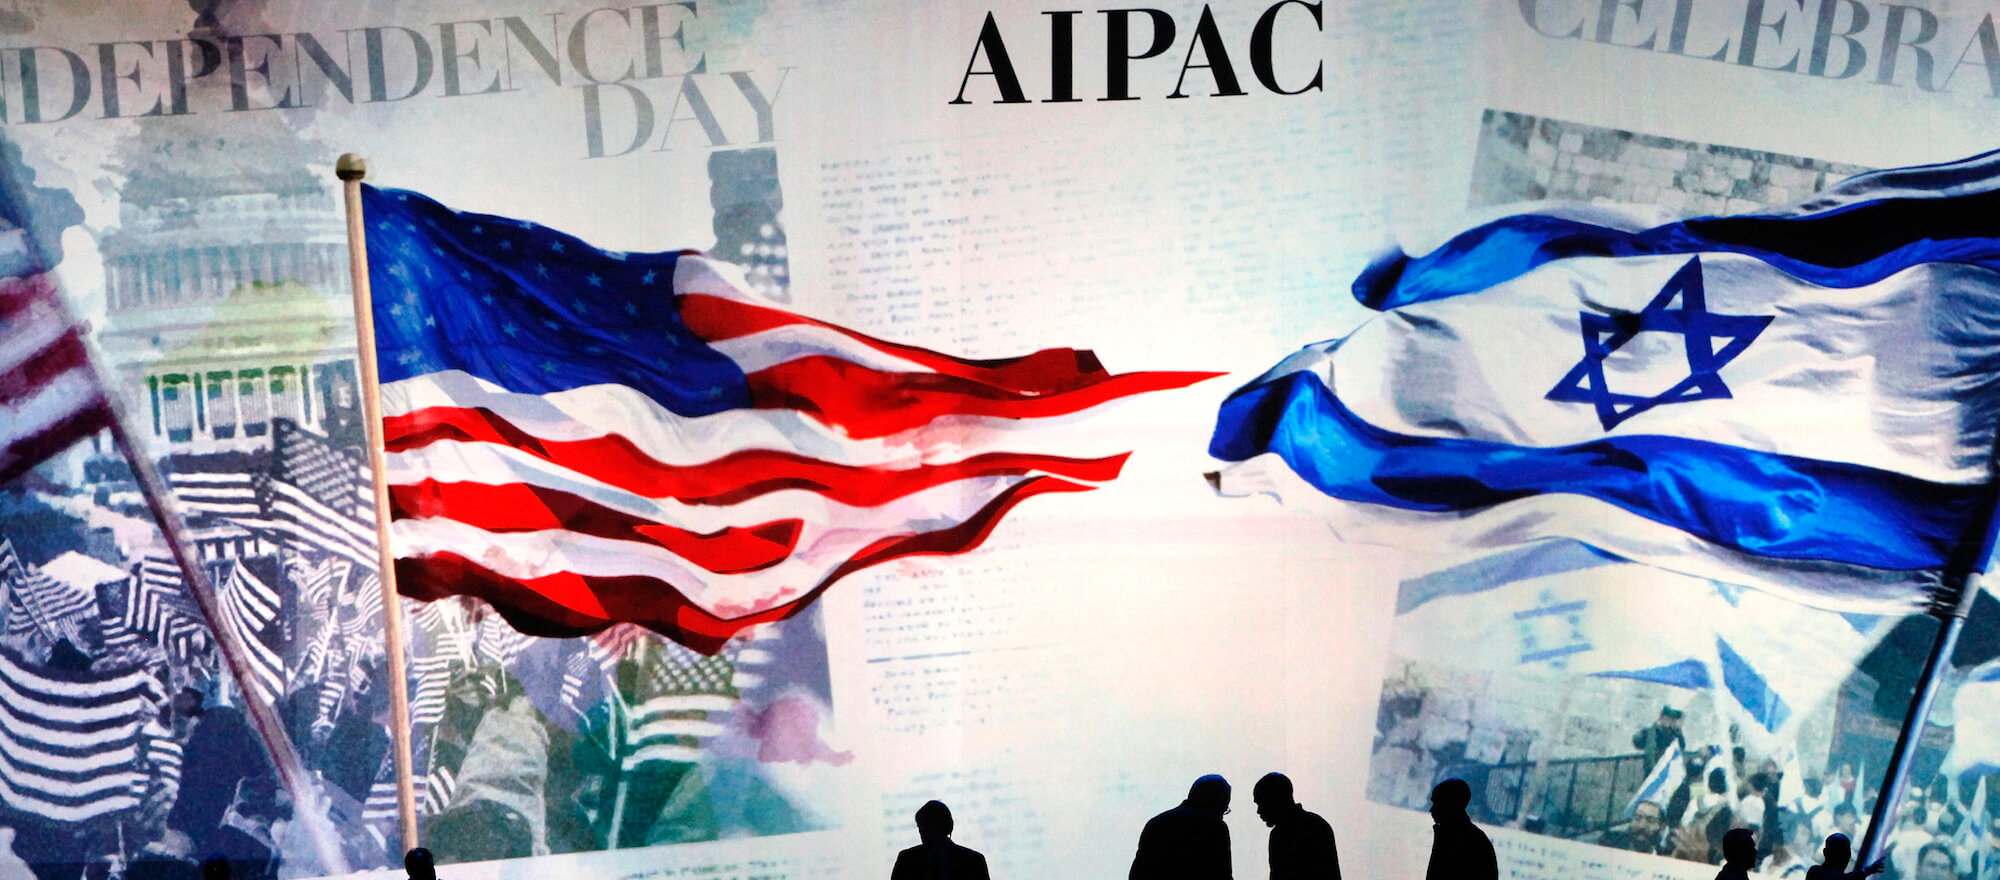 Workers prepare the stage at the American Israel Public Affairs Committee (AIPAC) policy conference in Washington, March 2, 2015. (Photo: REUTERS/Jonathan Ernst)